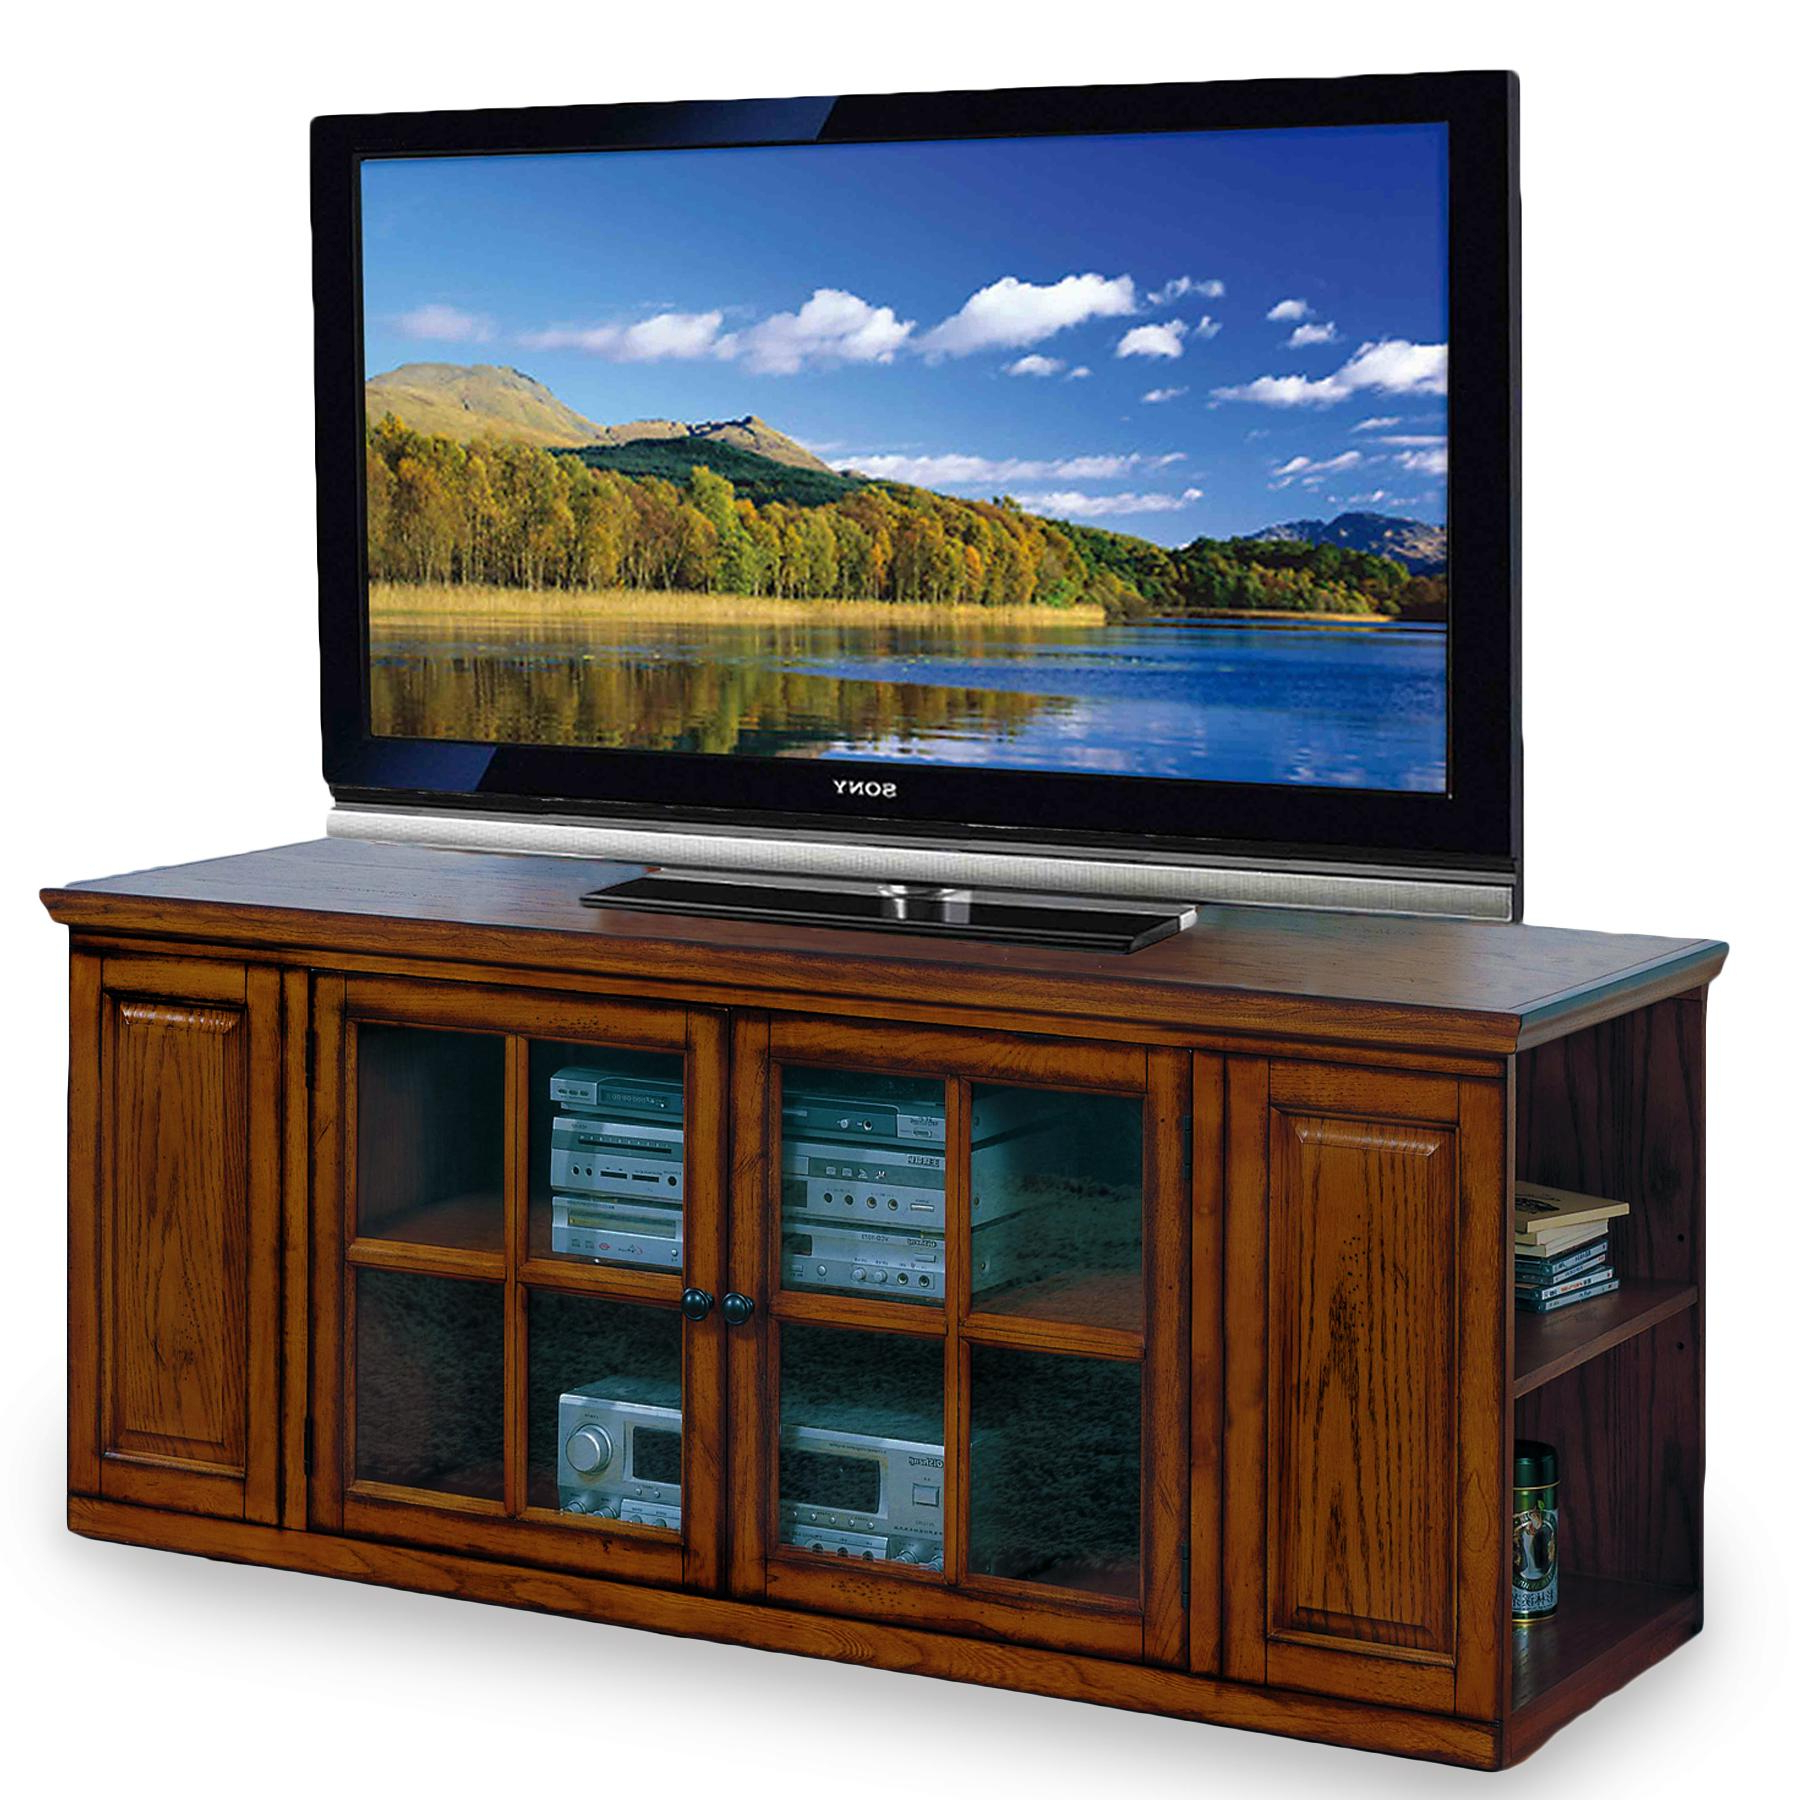 Rustic Tv Stands For Sale Within Most Up To Date Amazon: Leick Riley Holliday Tv Stand, 62 Inch, Burnished Oak (Gallery 20 of 20)